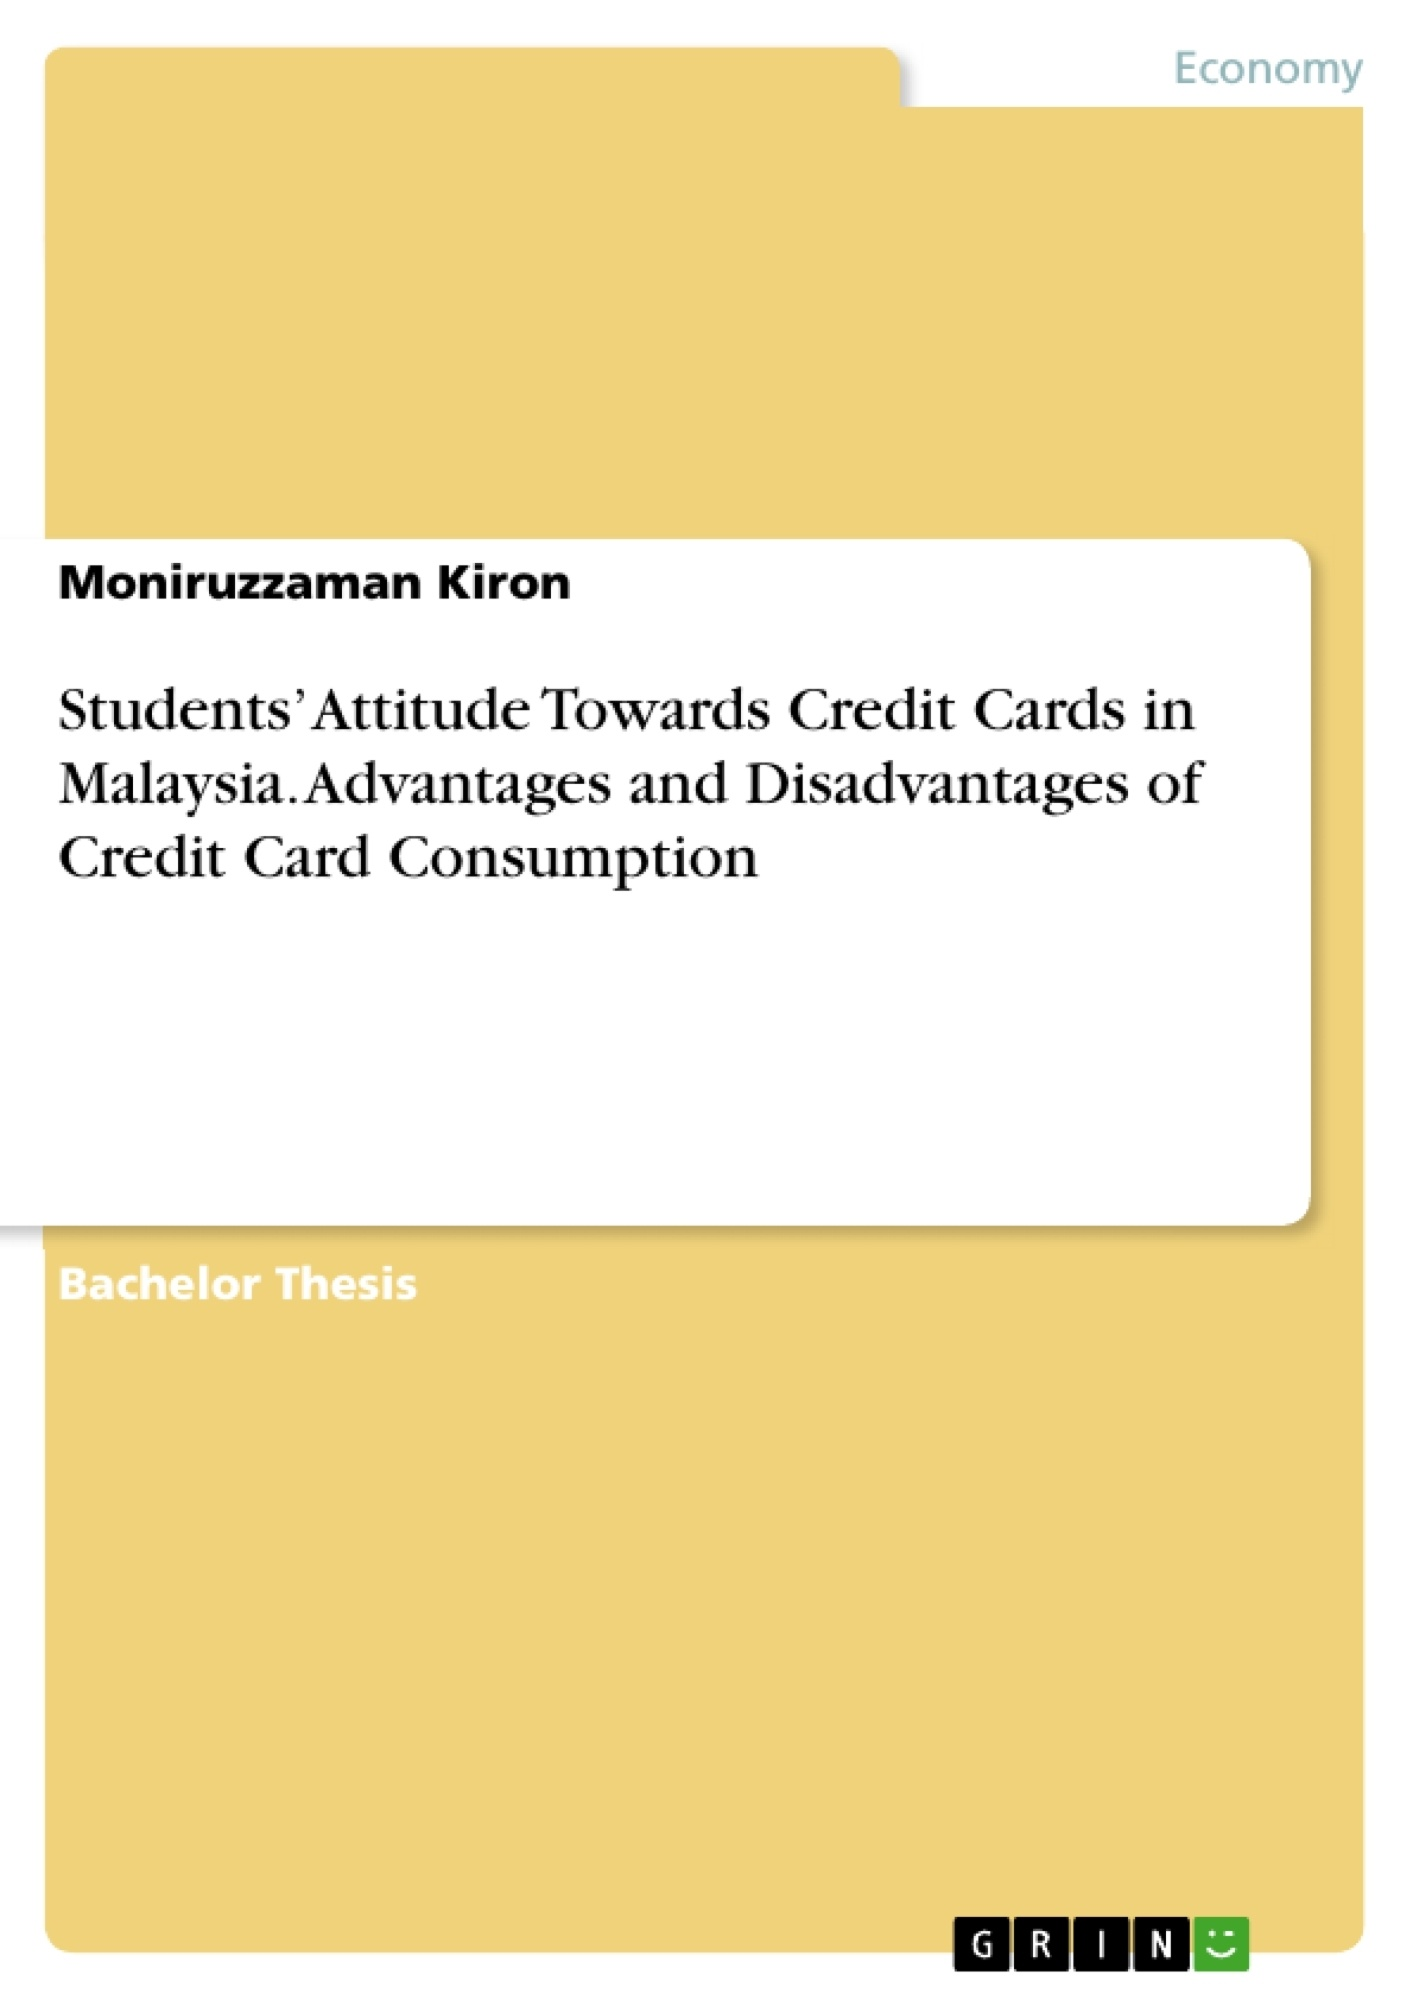 Title: Students' Attitude Towards Credit Cards in Malaysia. Advantages and Disadvantages of Credit Card Consumption